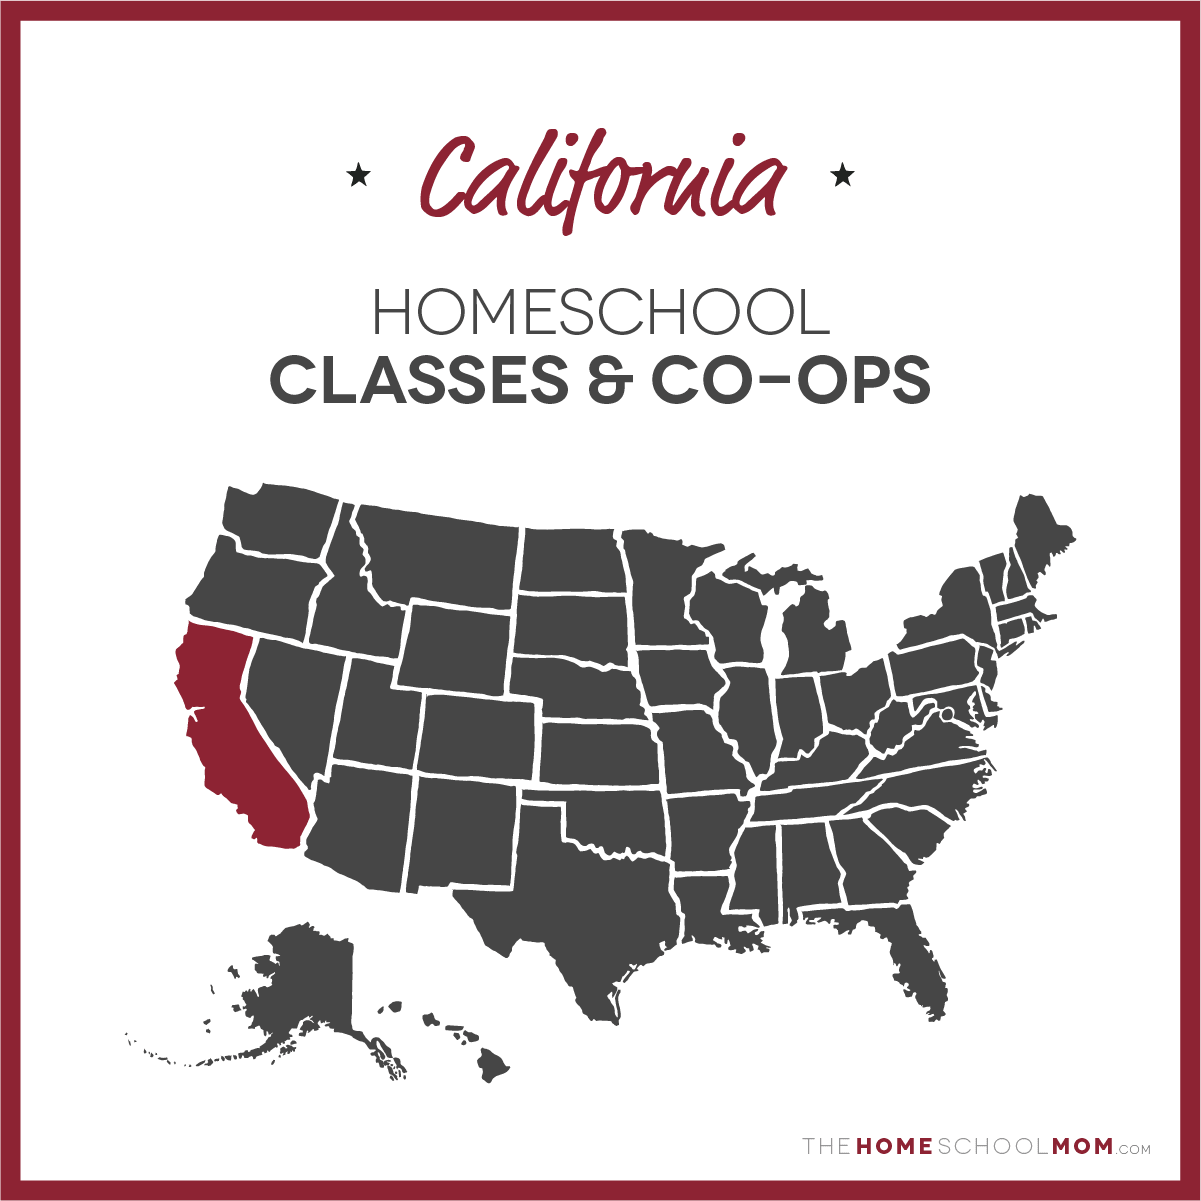 map of the US with California highlighted and text California Homeschool Classes & Co-ops